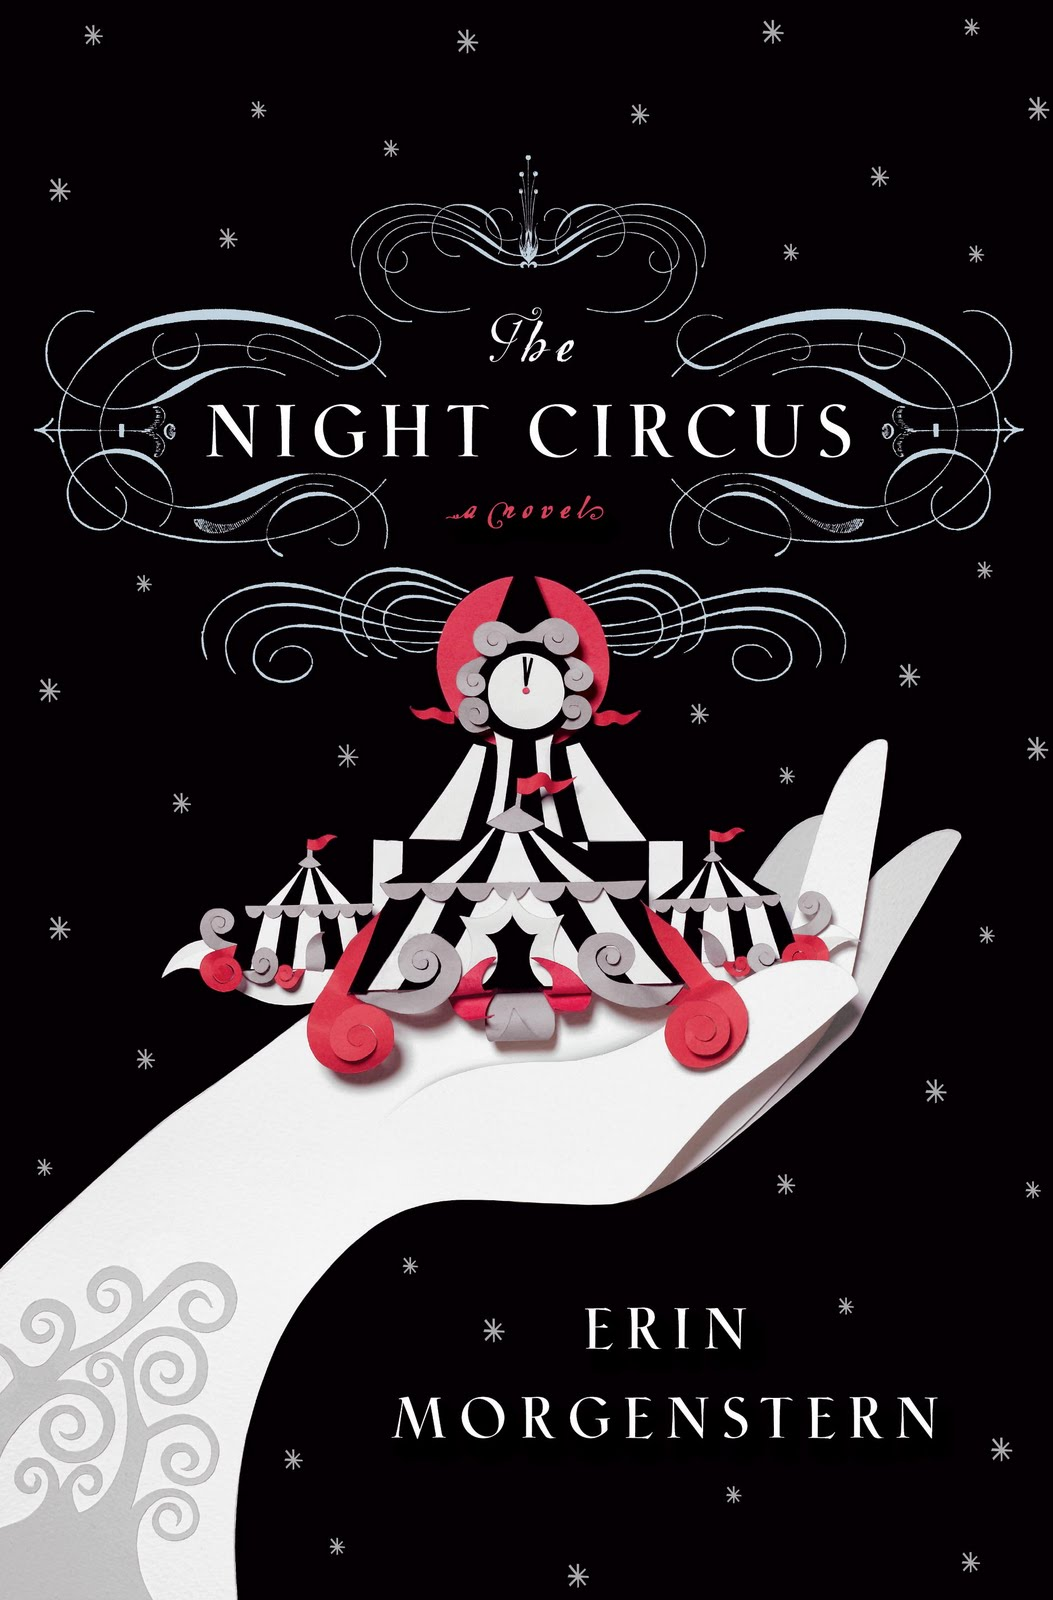 Afternoon Book Discussion: The Night Circus